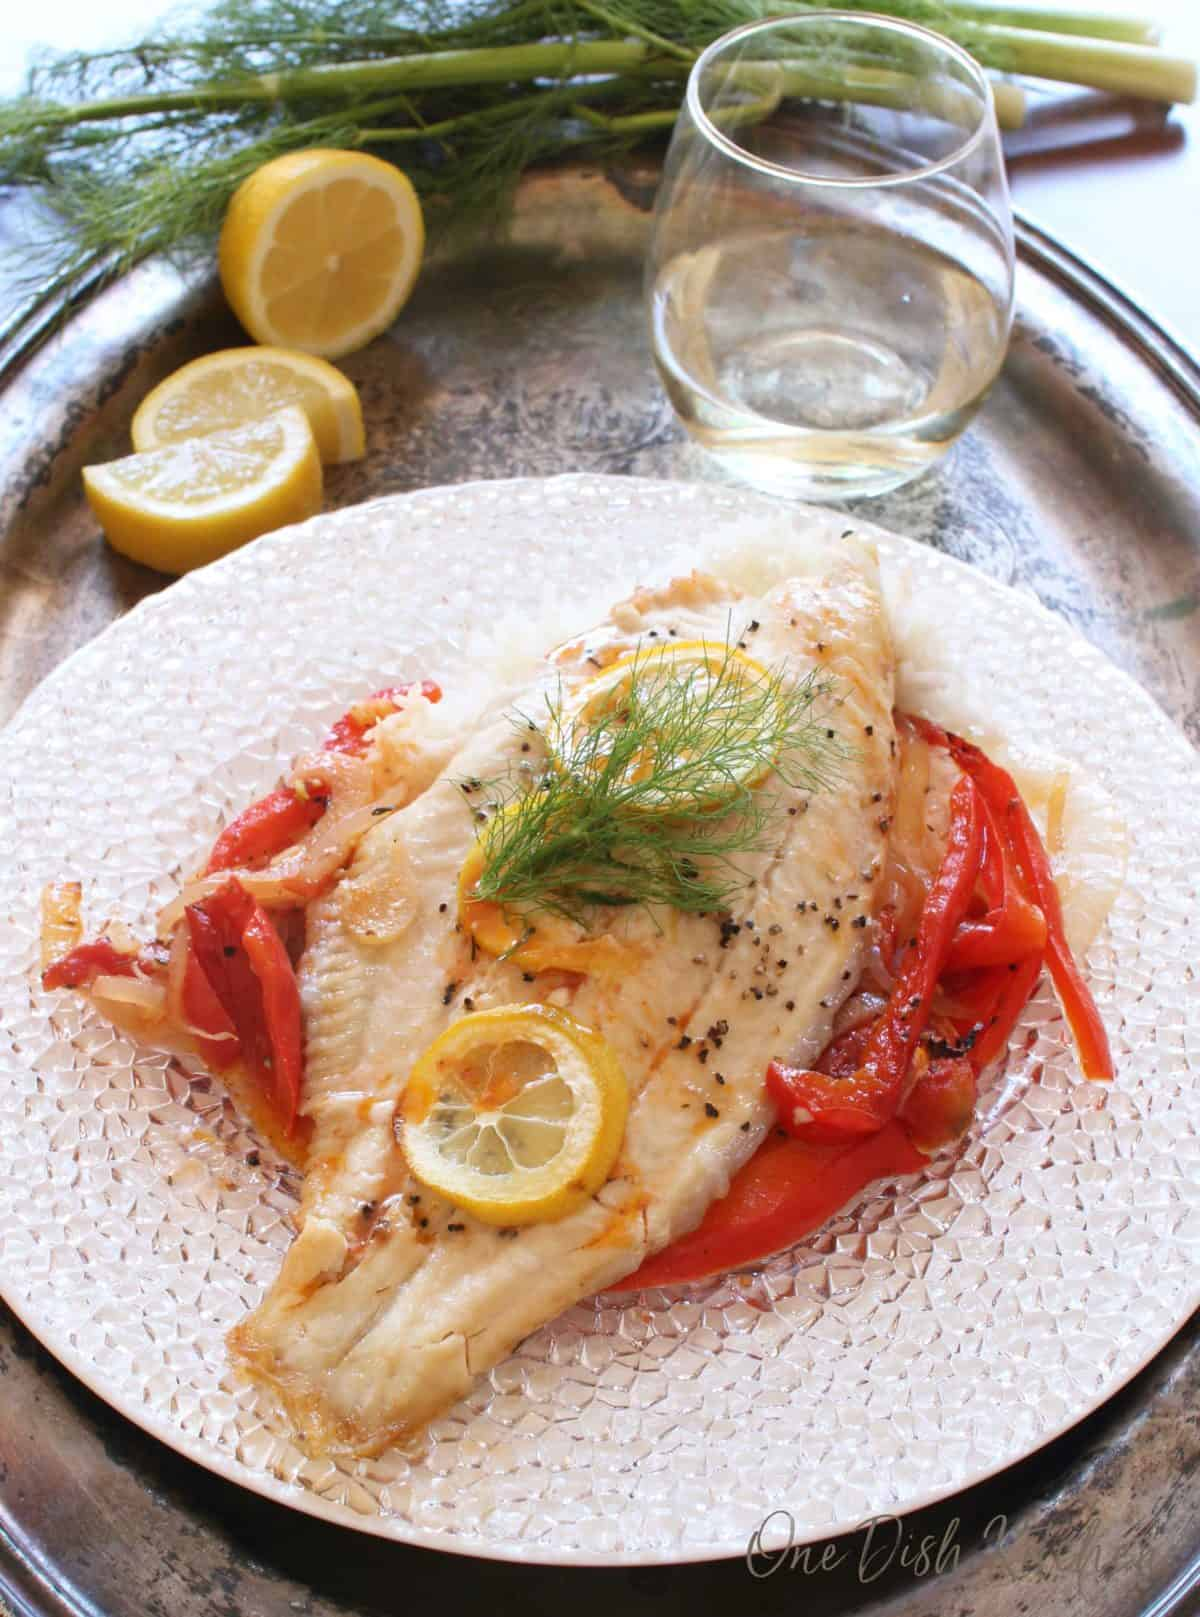 Baked catfish garnished with three lemon wheels over cooked white rice, red peppers, and onions on a glass plate on a metal tray with lemon slices and a glass of white wine